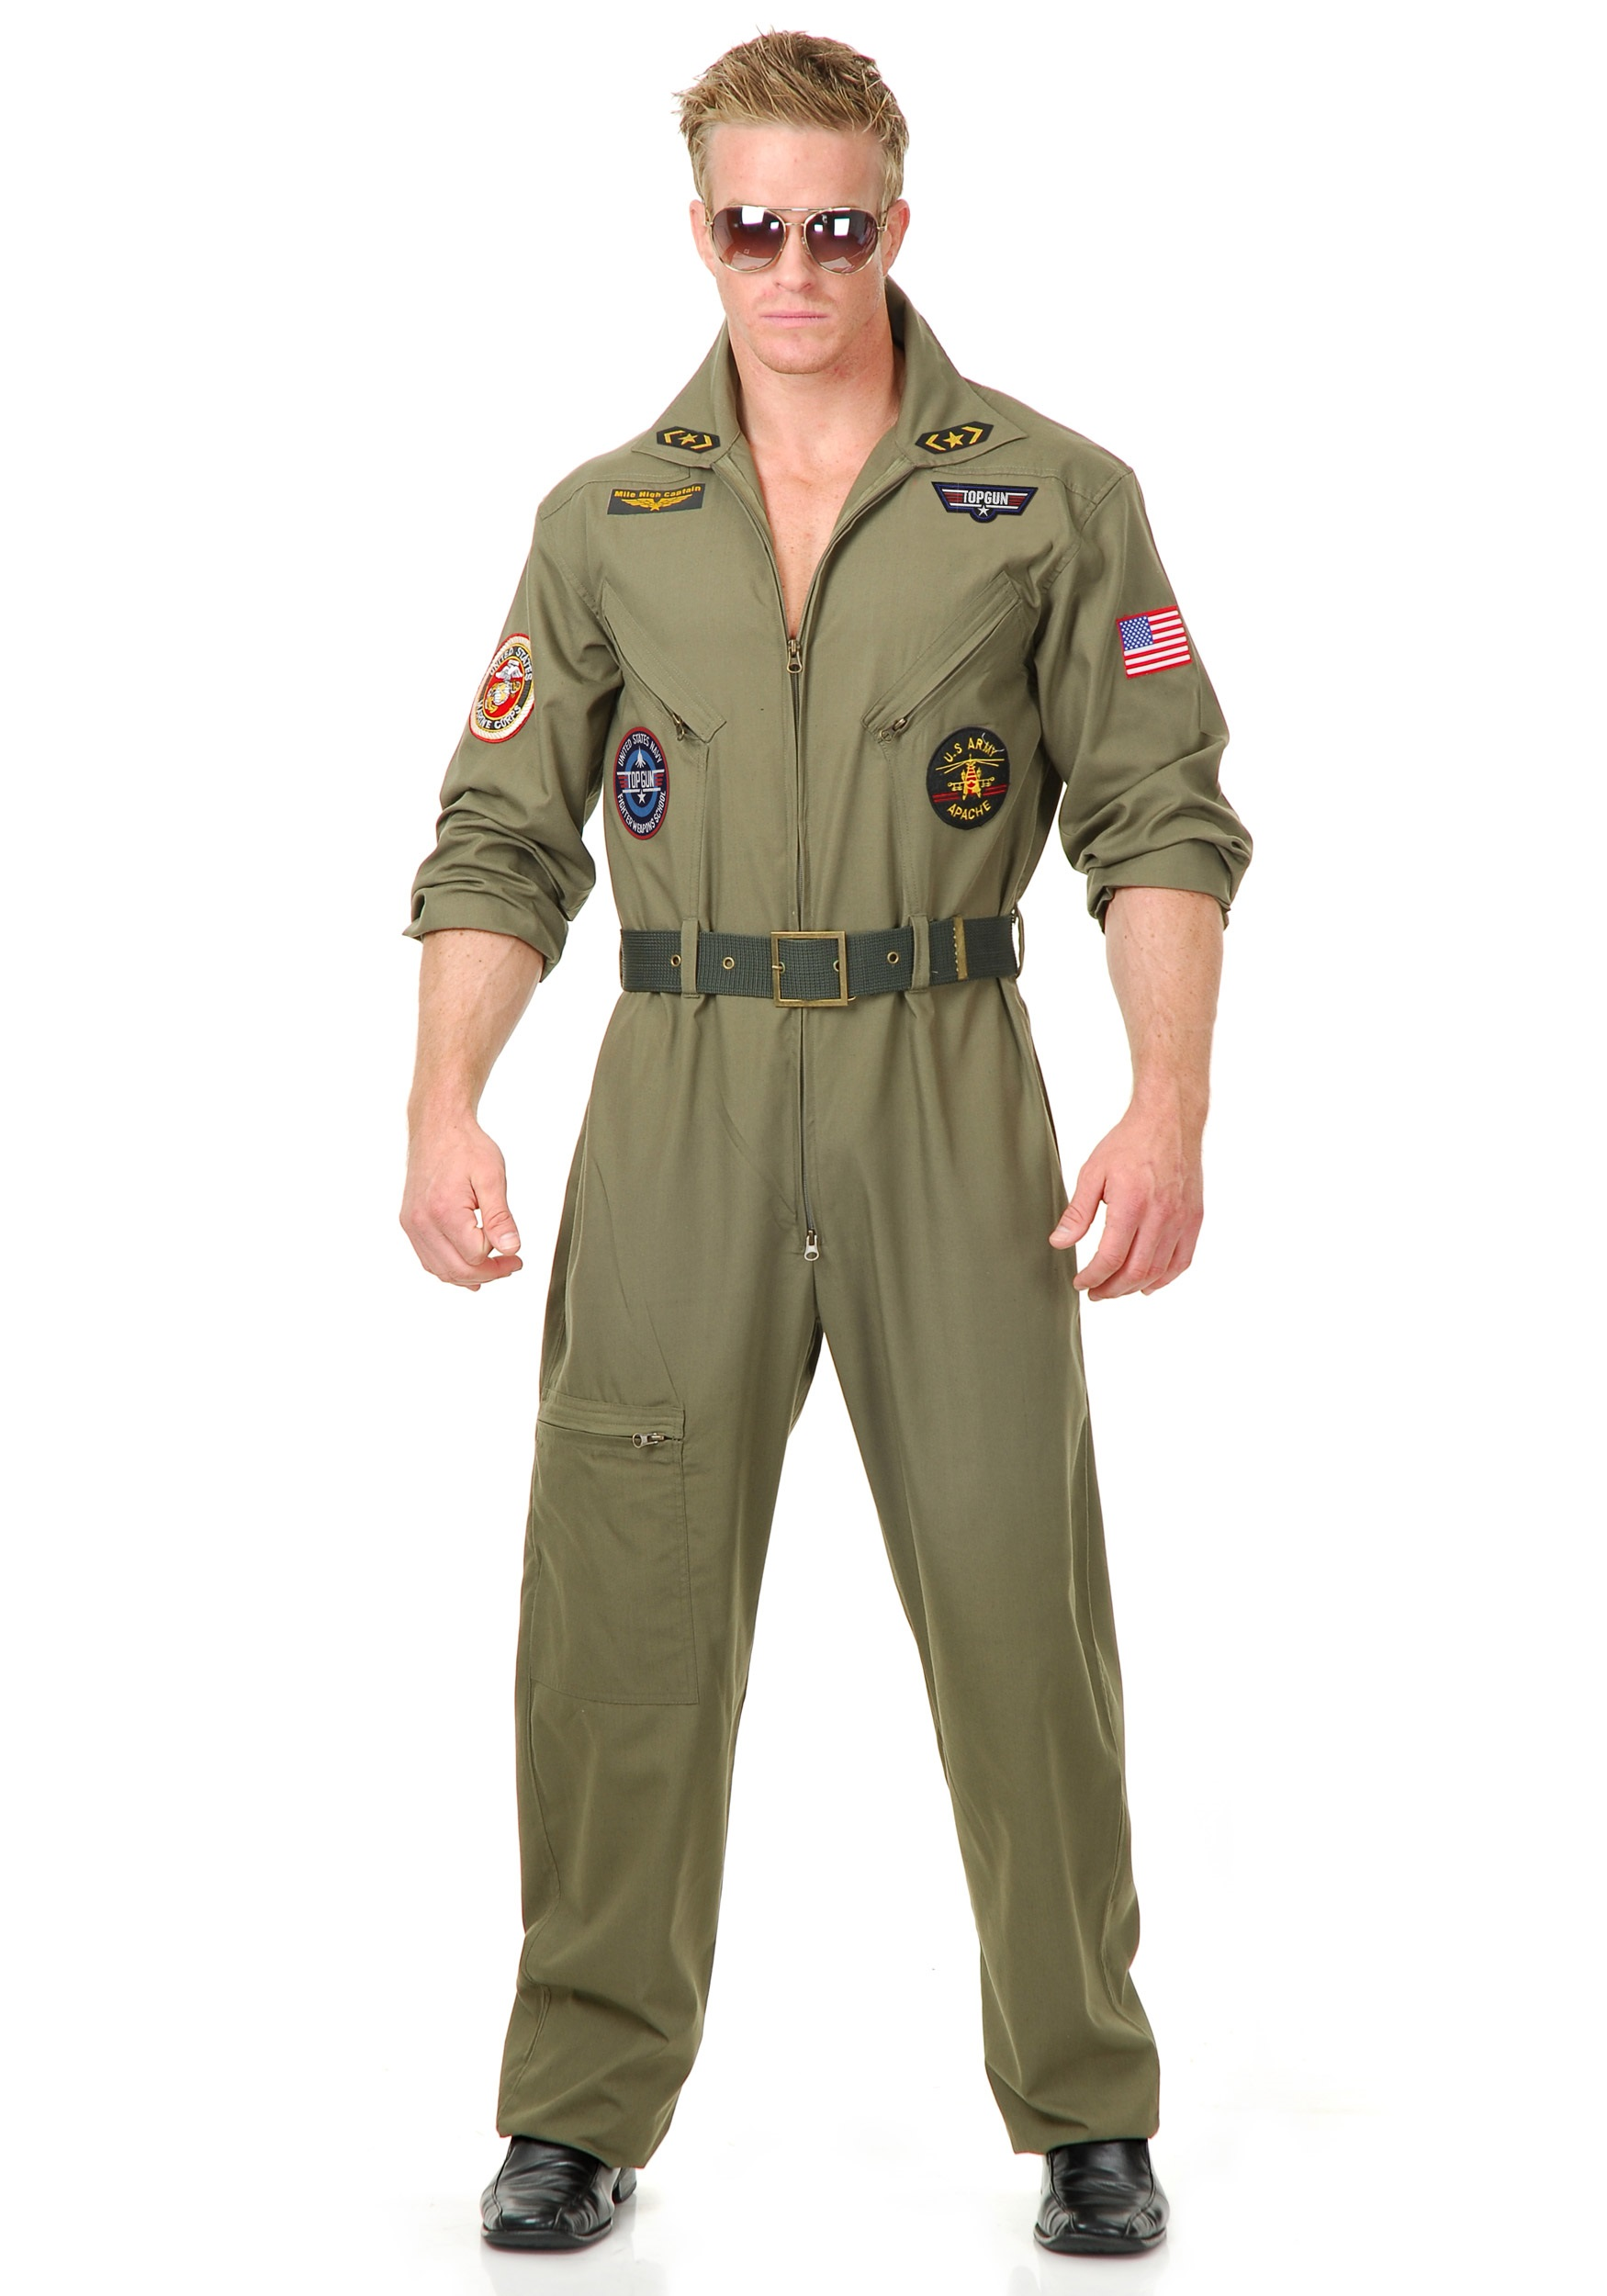 Womens Air Force Pilot Costume Air Force Pilot Costume Women